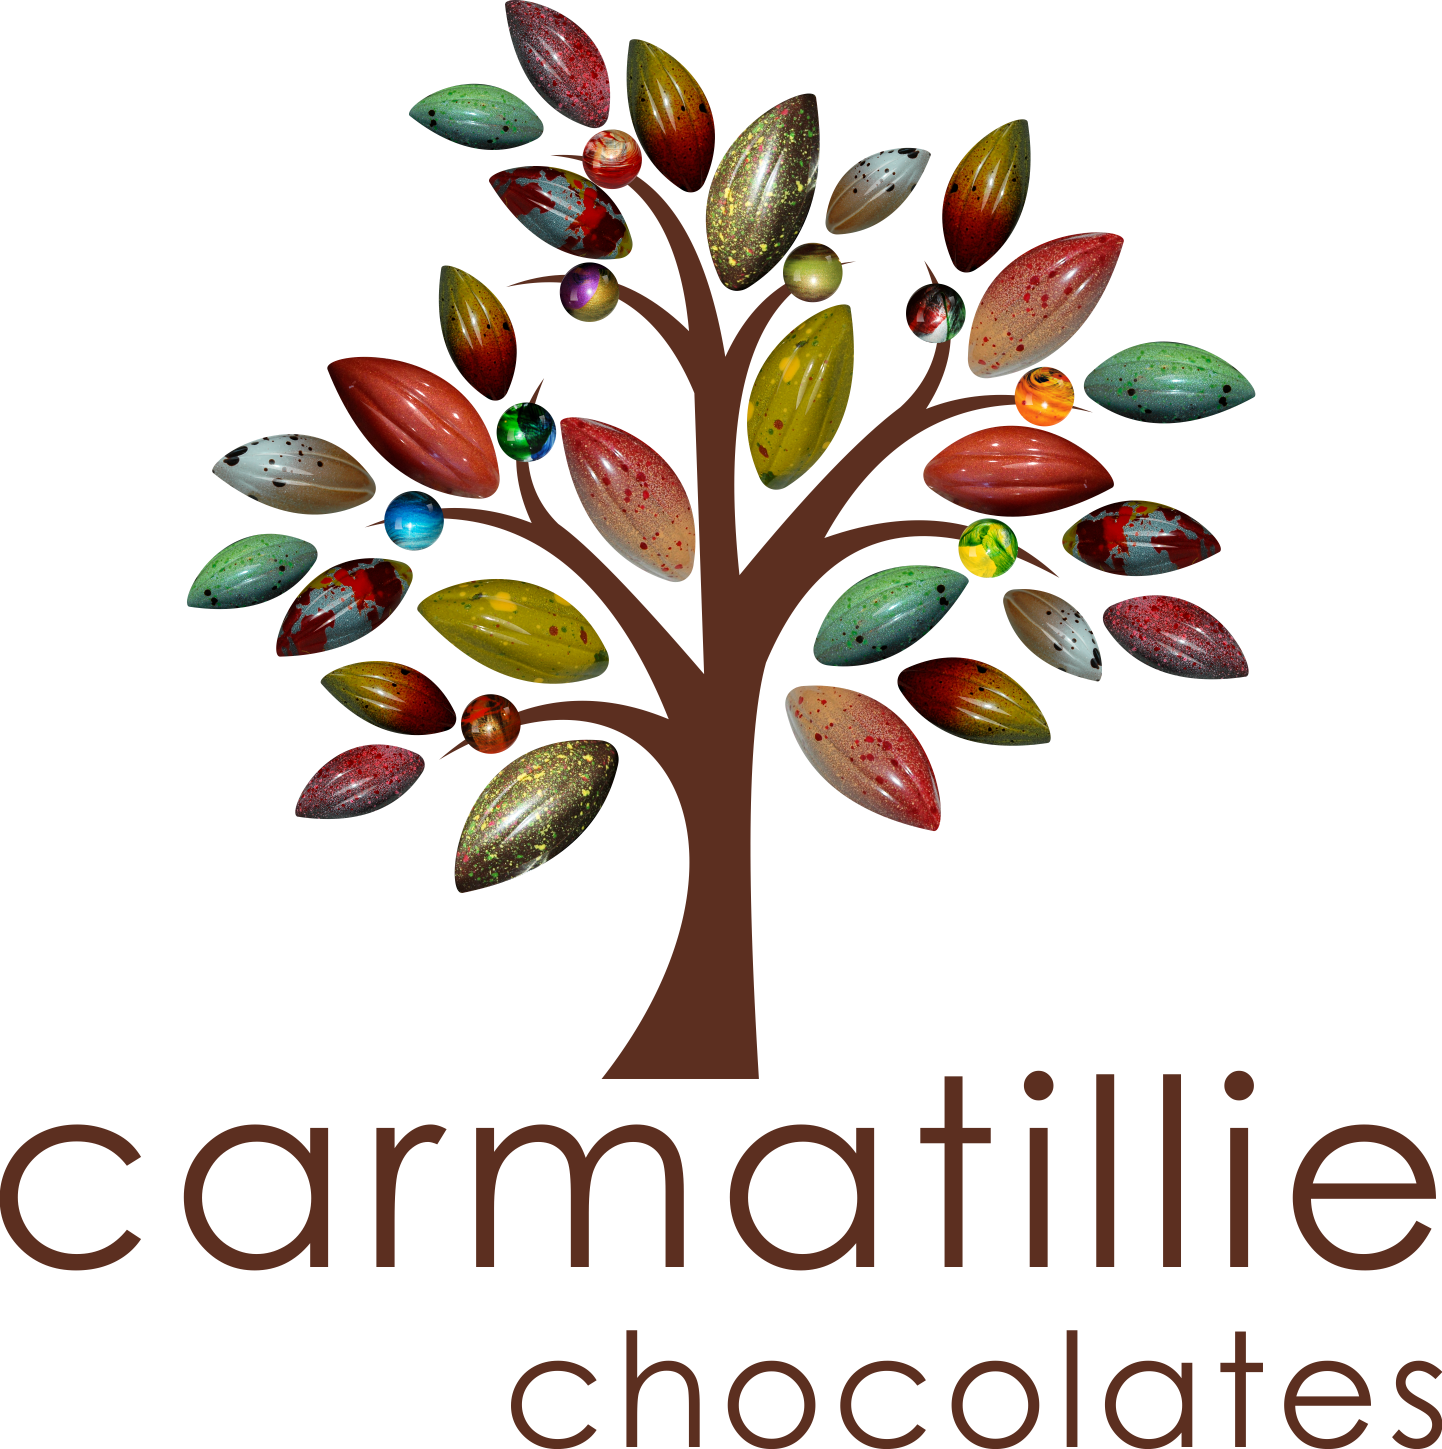 Carmatillie Chocolates